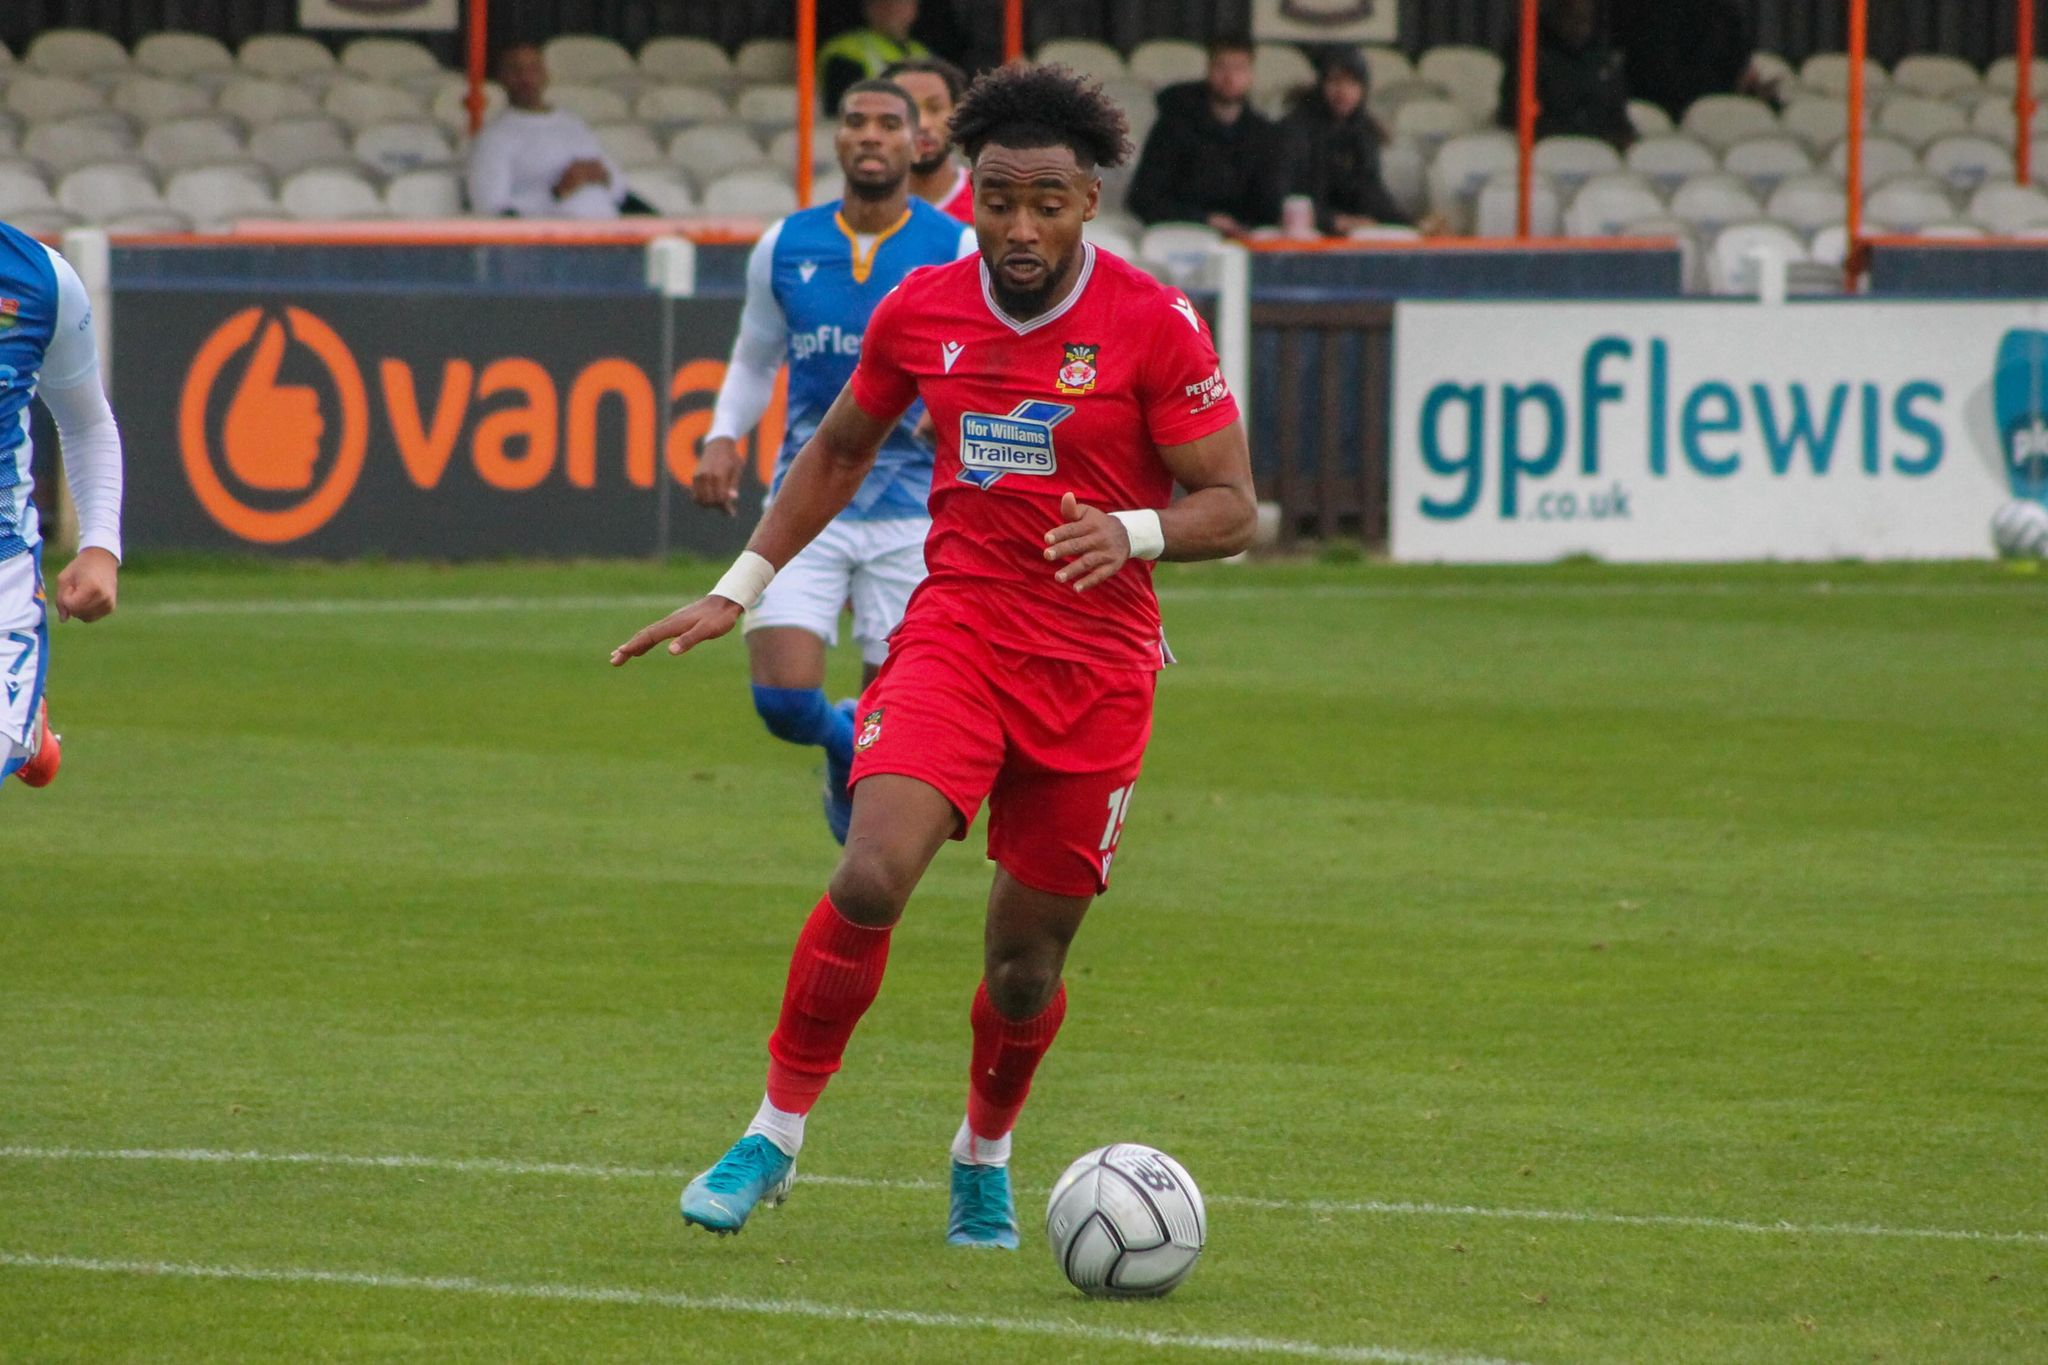 Offical match report from Wrexham